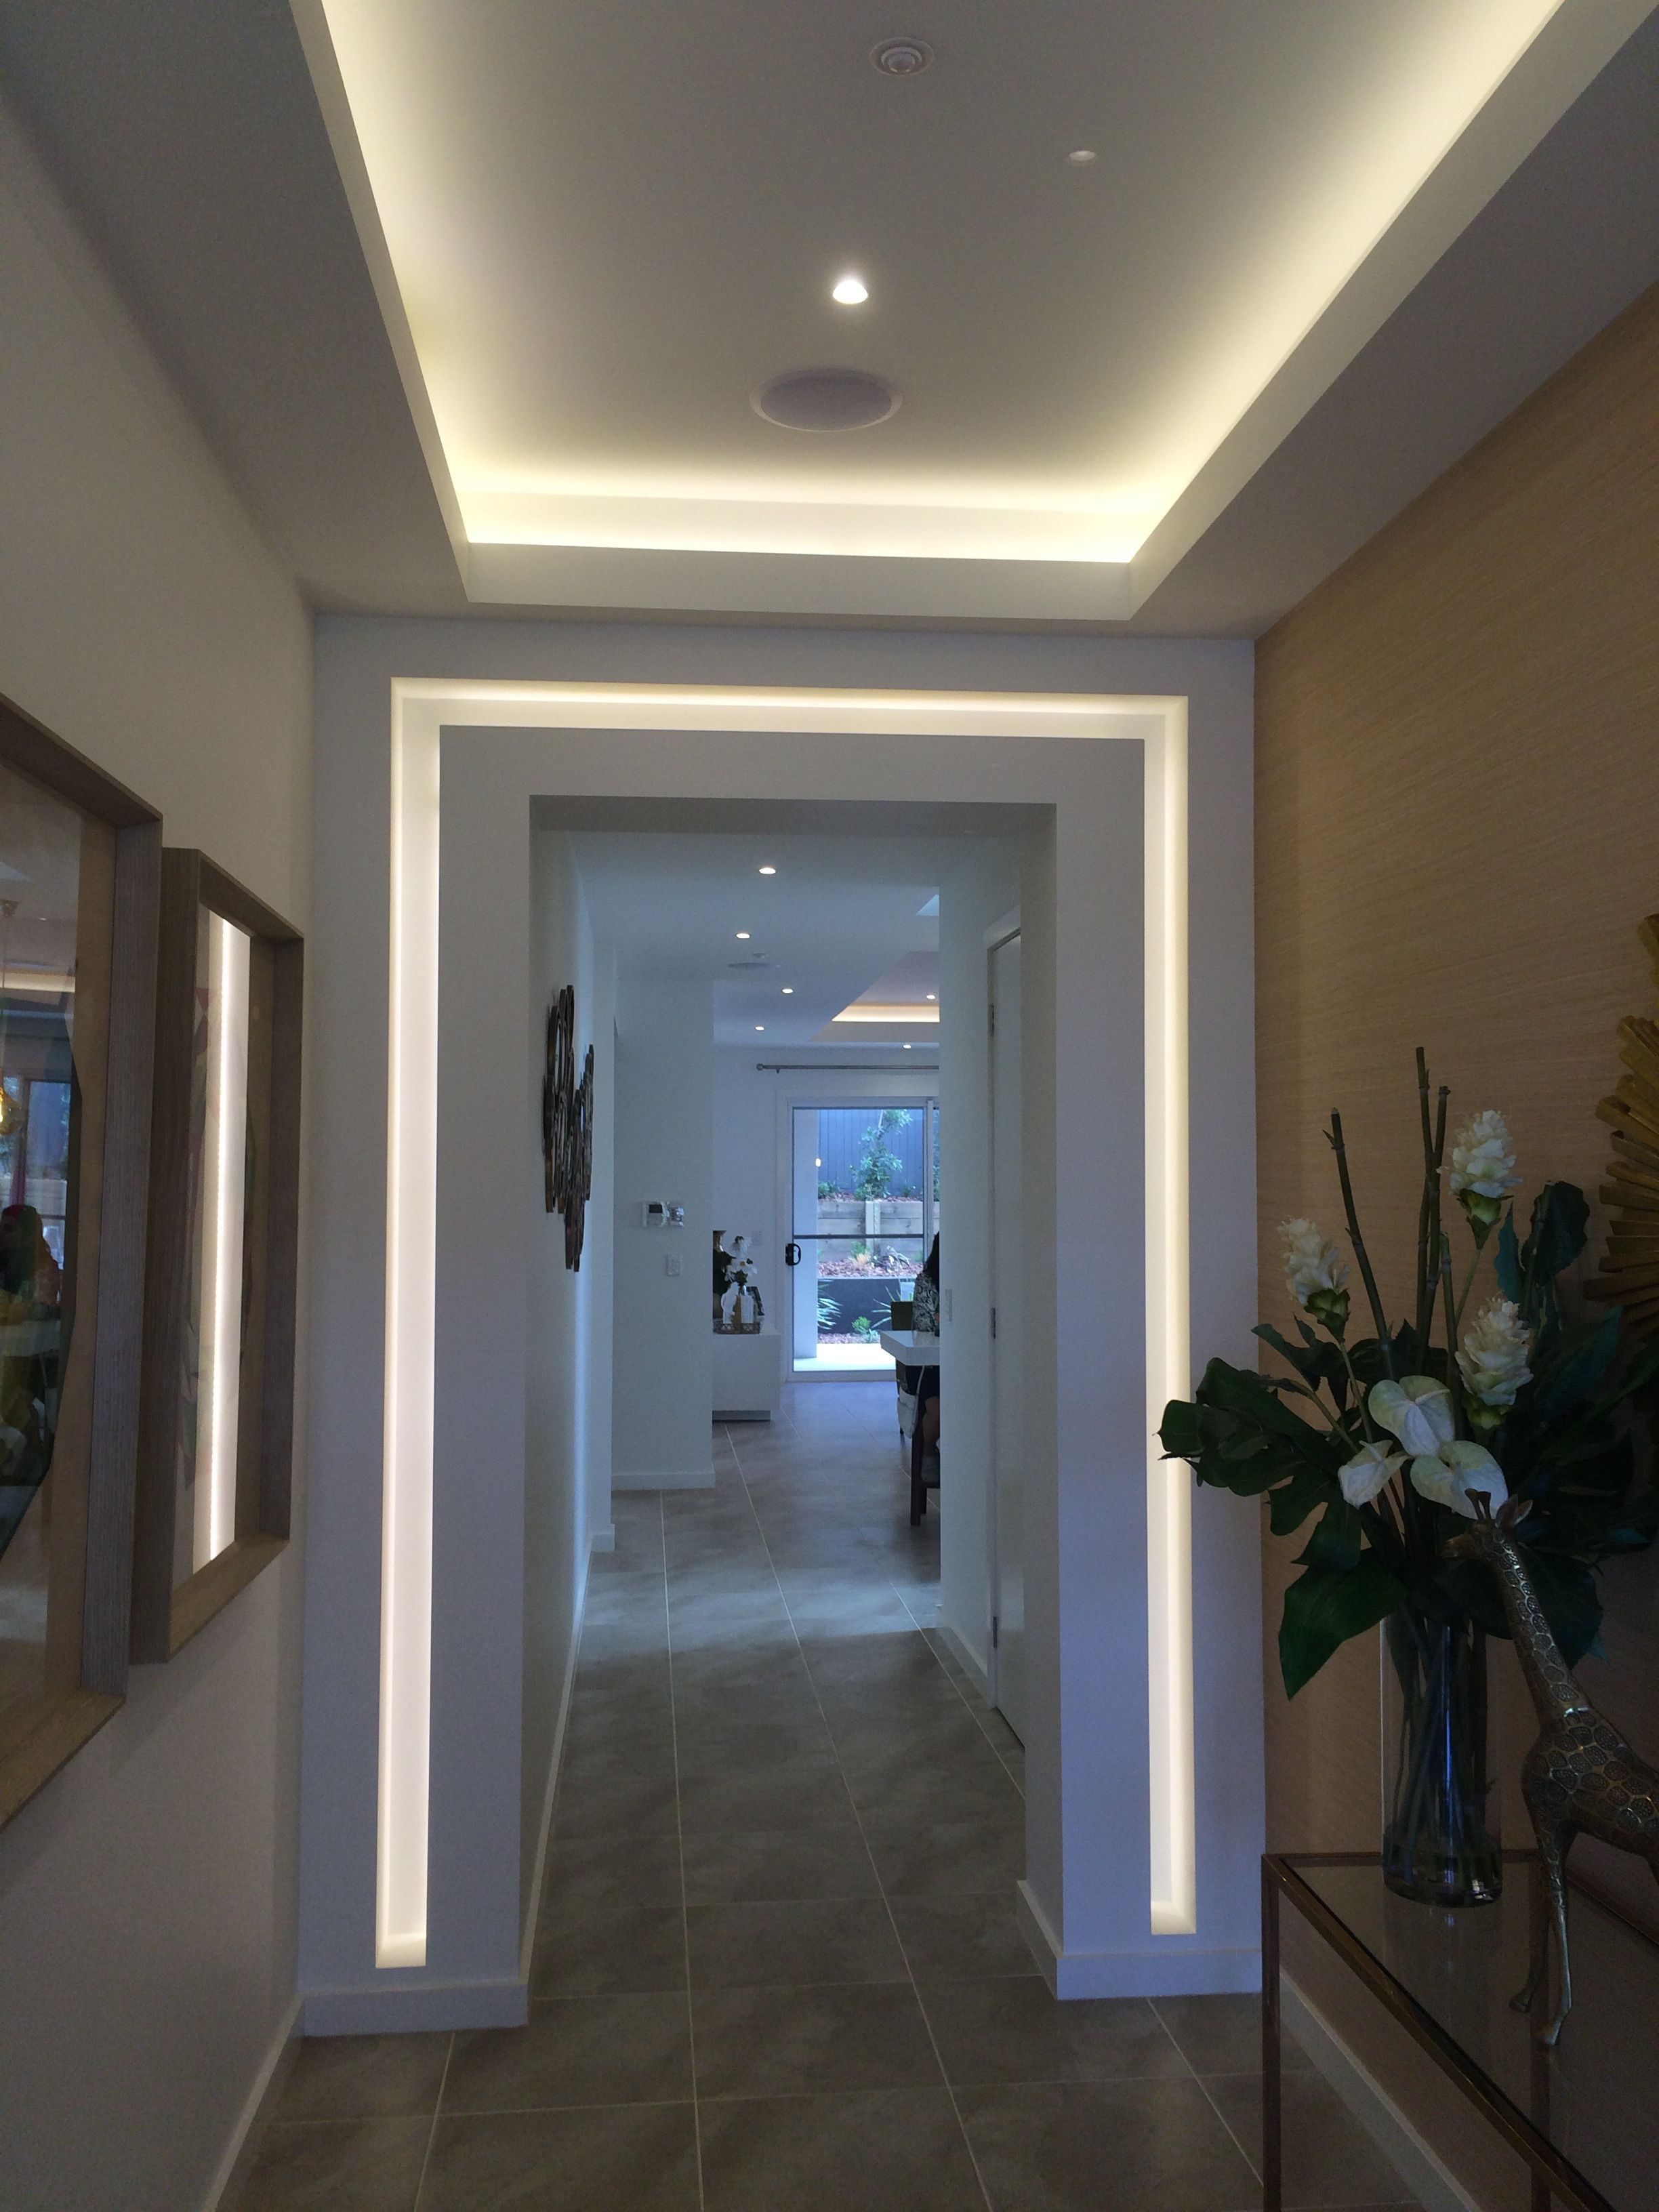 Lighting For Entrance Or Hallway Ceiling Lights Basement Lighting Modern Ceiling Light